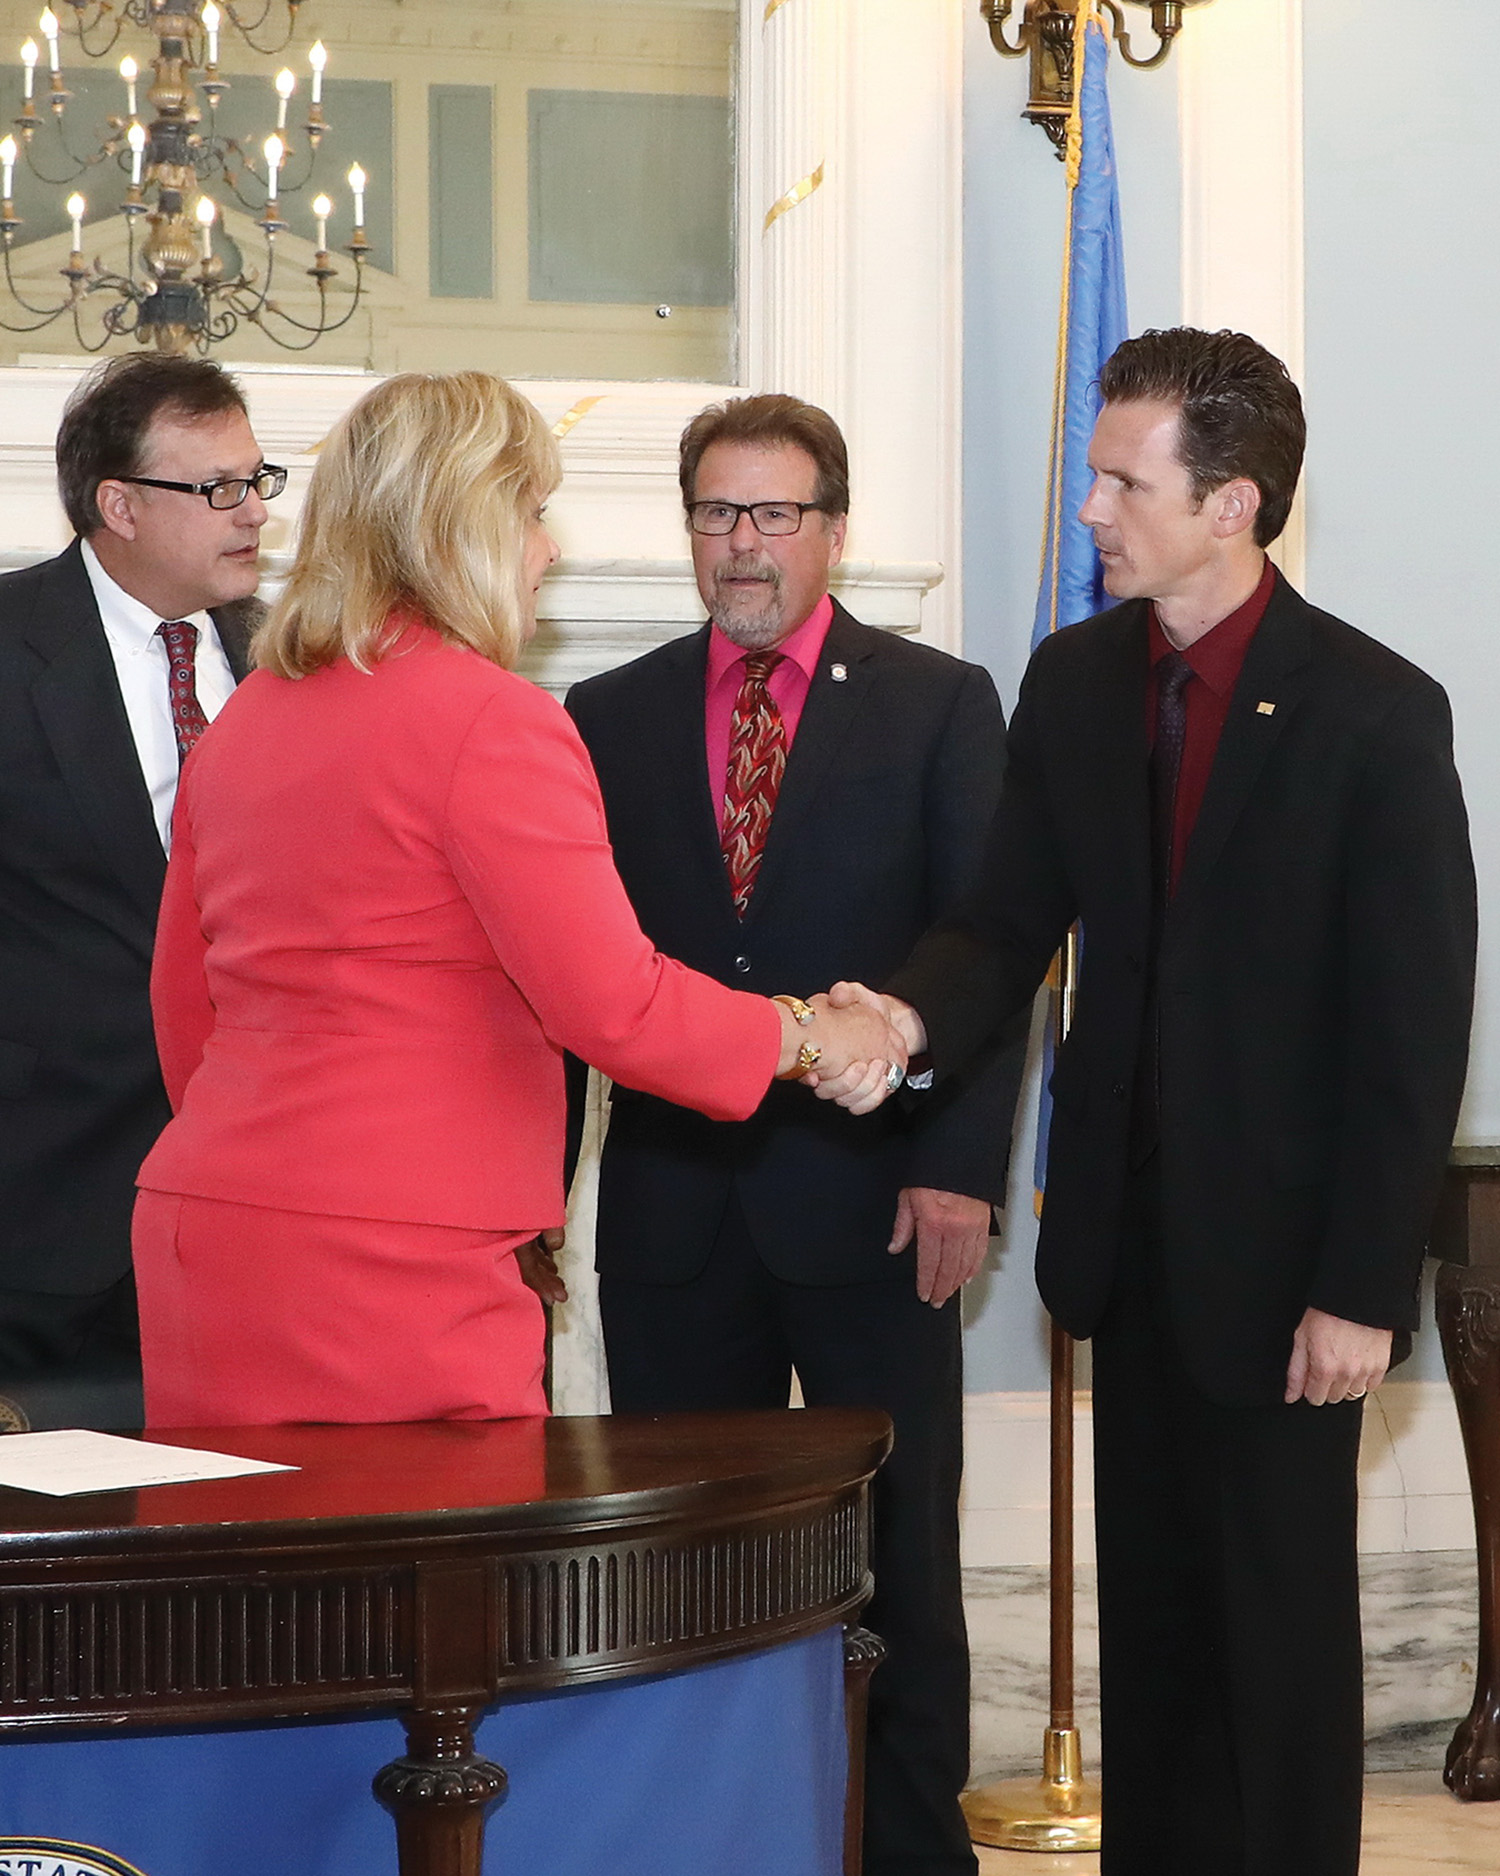 Brad Banks, manager of operations at the Tulsa Port of Catoosa, meets with Gov. Mary Fallin and state representatives for the official bill signing ceremony. (Photo courtesy of Tulsa Port of Catoosa)